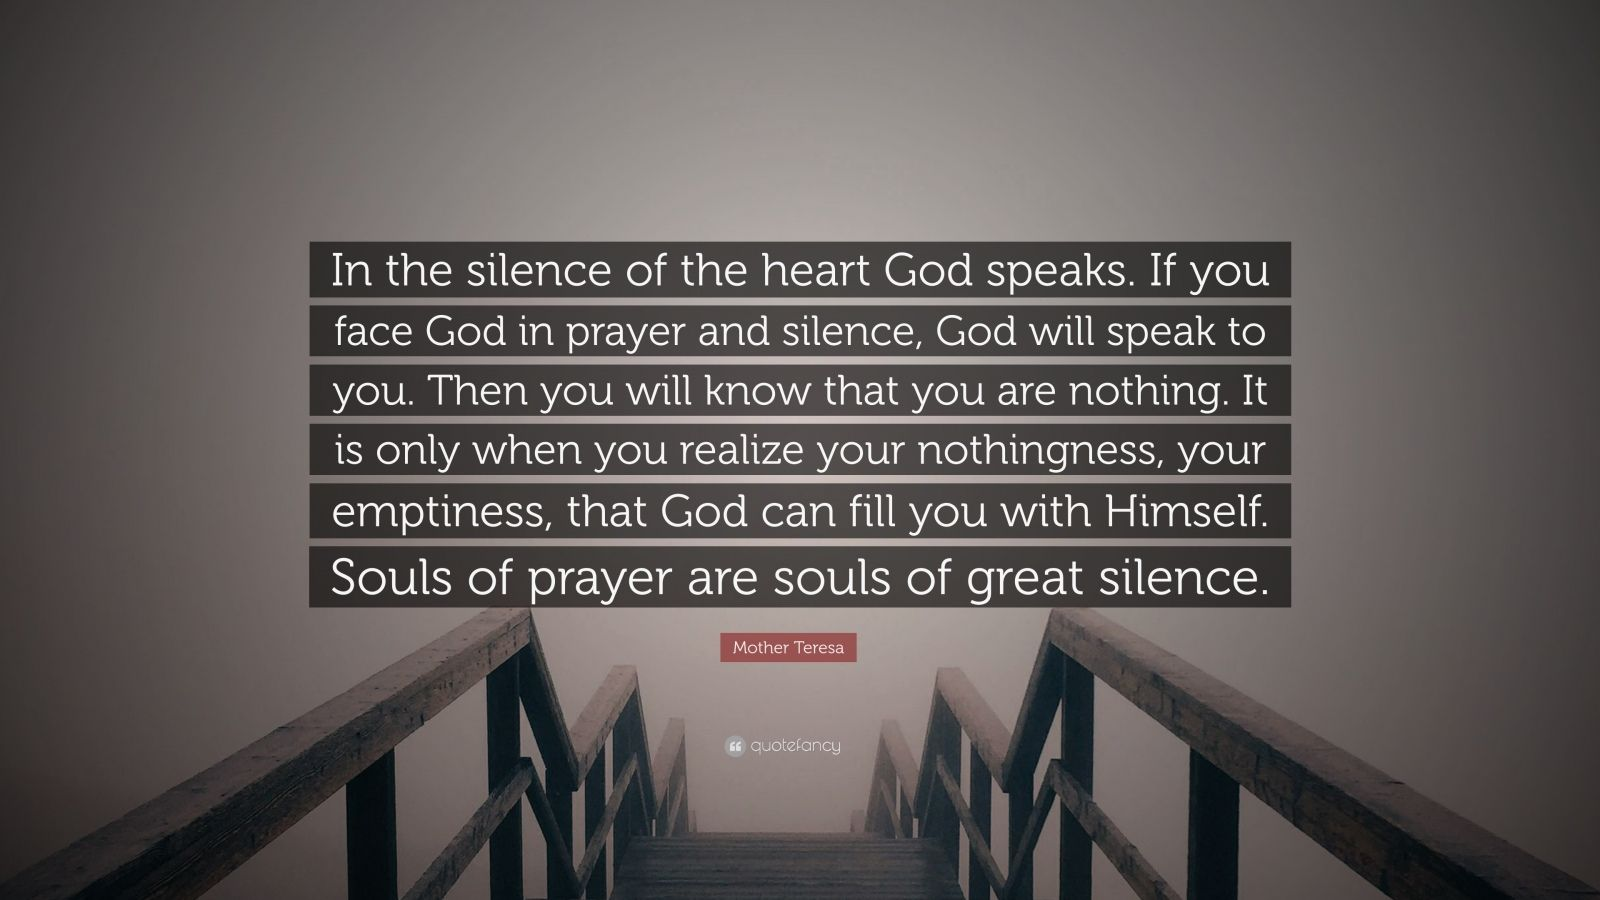 "Mother Teresa Quote: ""In the silence of the heart God speaks. If you face God in prayer and silence, God will speak to you. Then you will know that you are nothing. It is only when you realize your nothingness, your emptiness, that God can fill you with Himself. Souls of prayer are souls of great silence."""